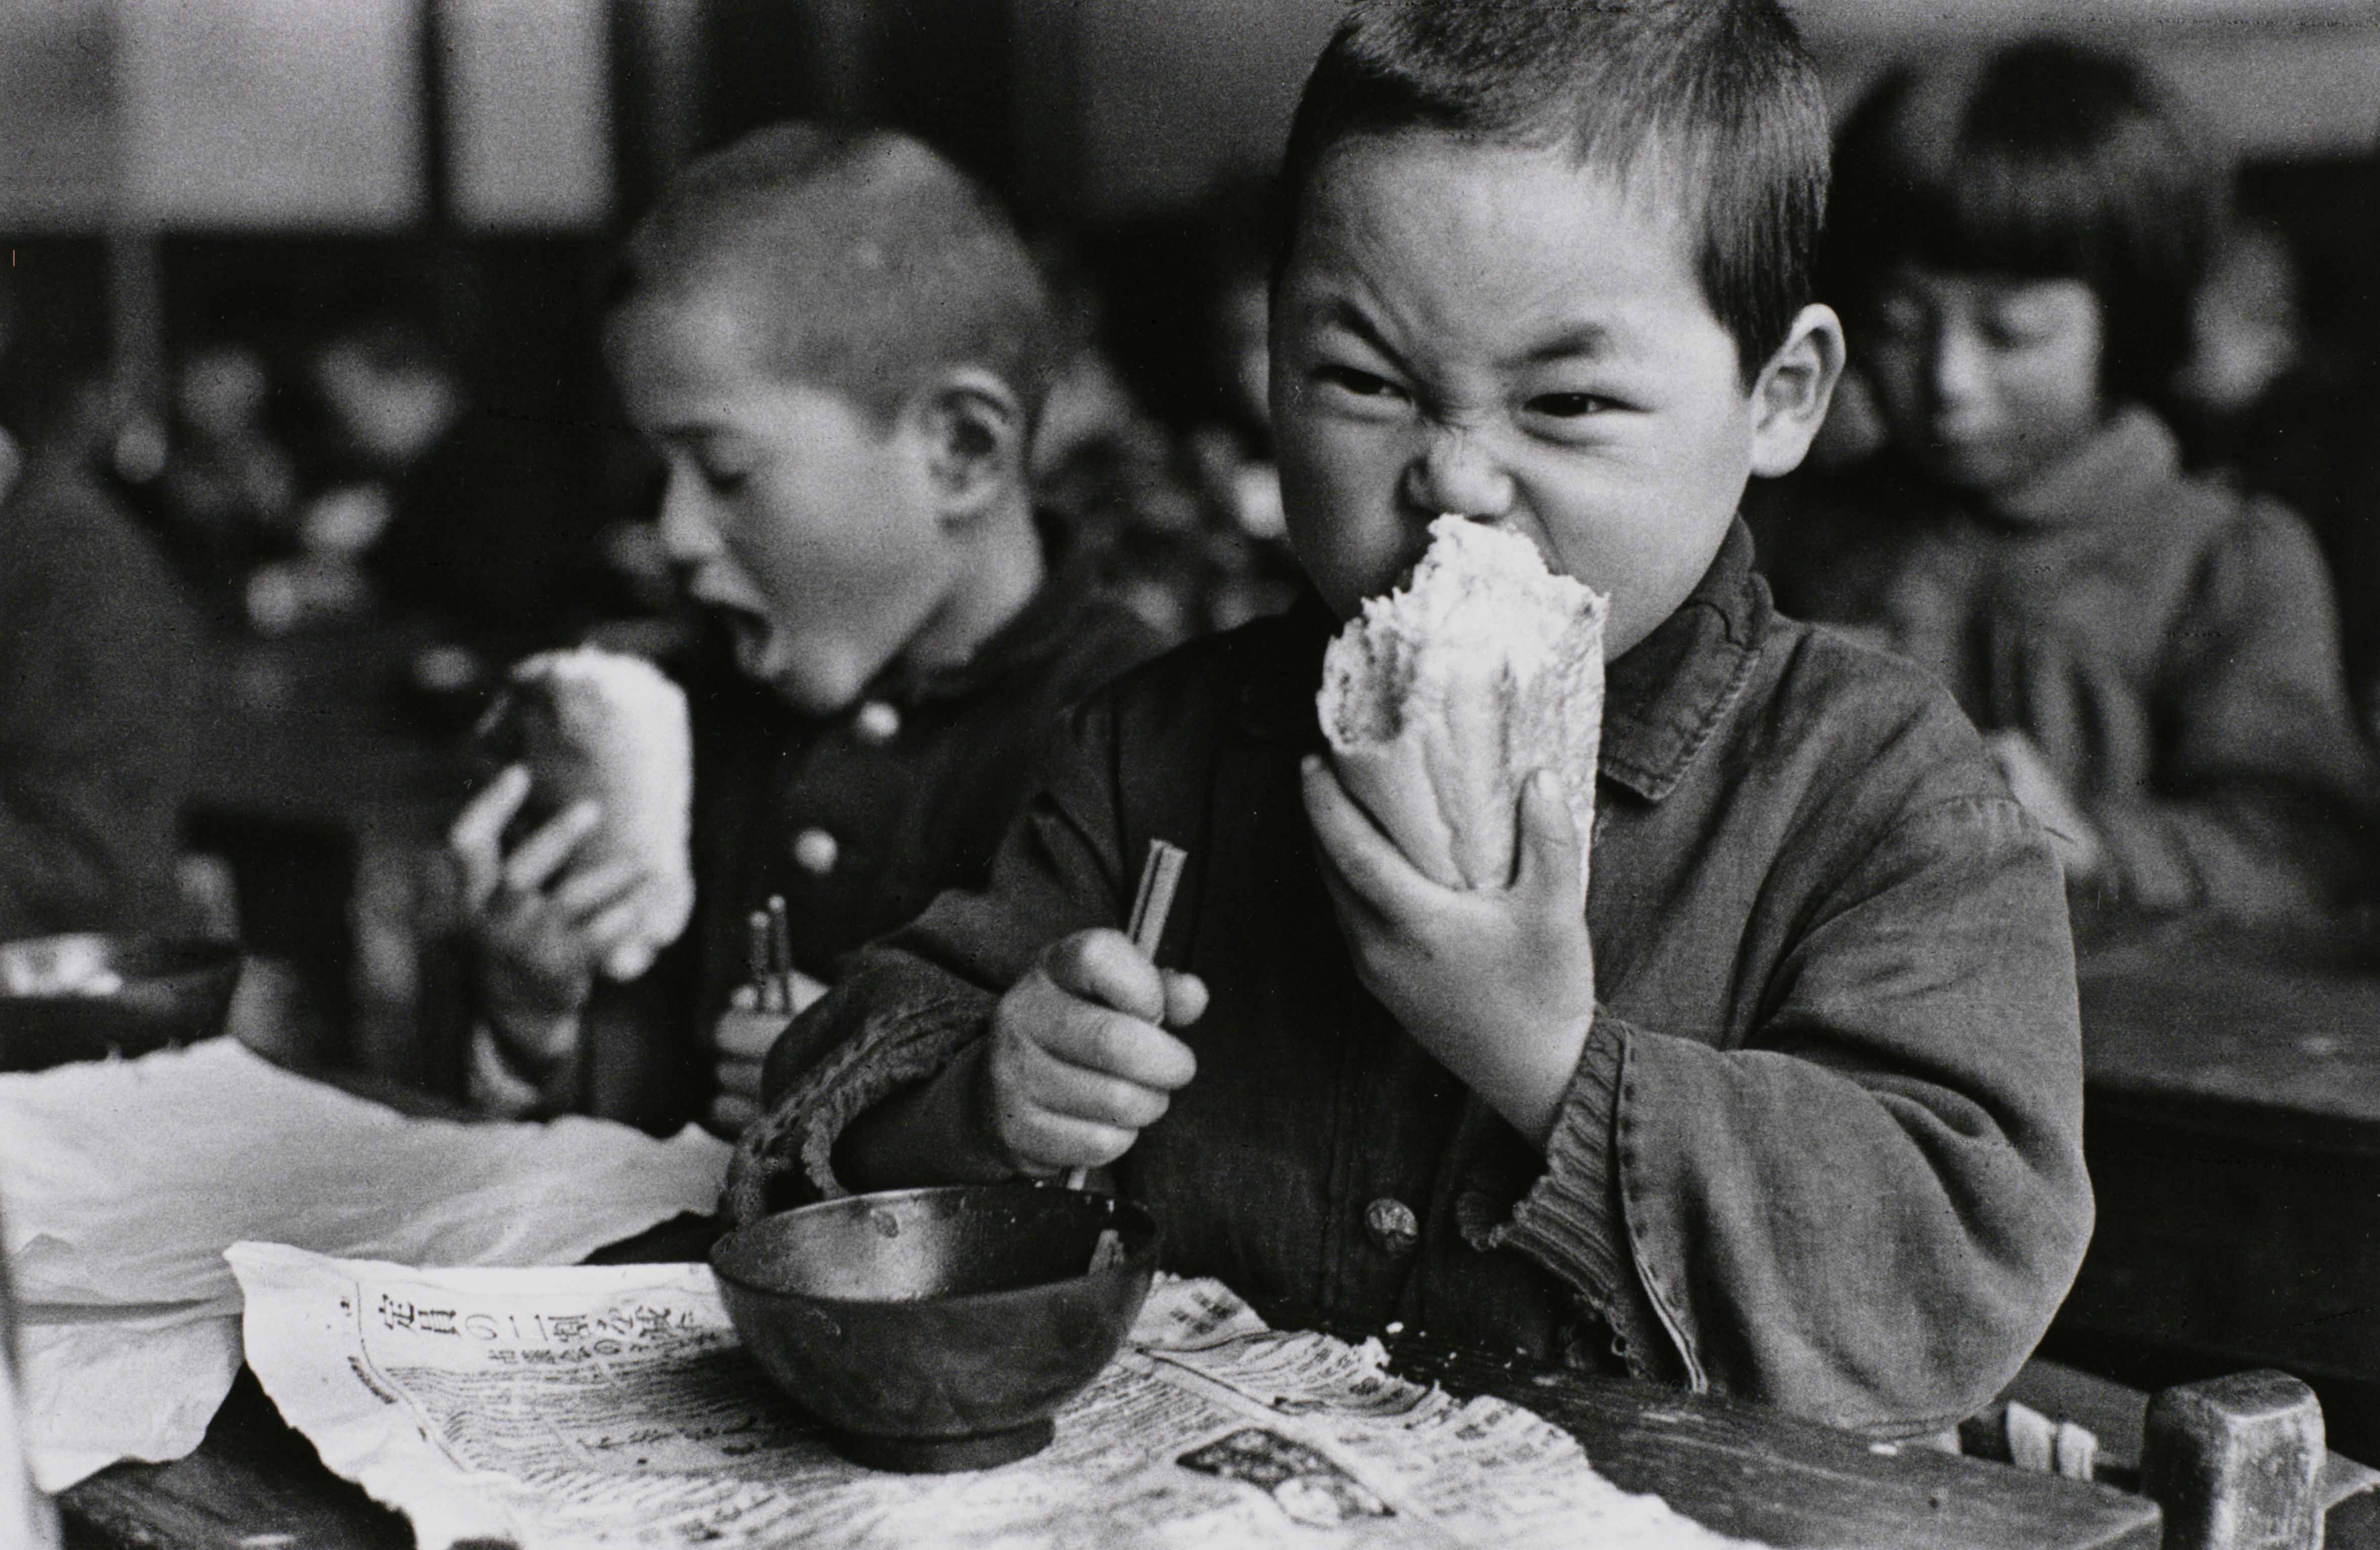 'Munching on a roll, from First Grade' (1953)by Genichi ) Kumagai. | THE TOKYO METROPOLITAN MUSEUM OF PHOTOGRAPHY